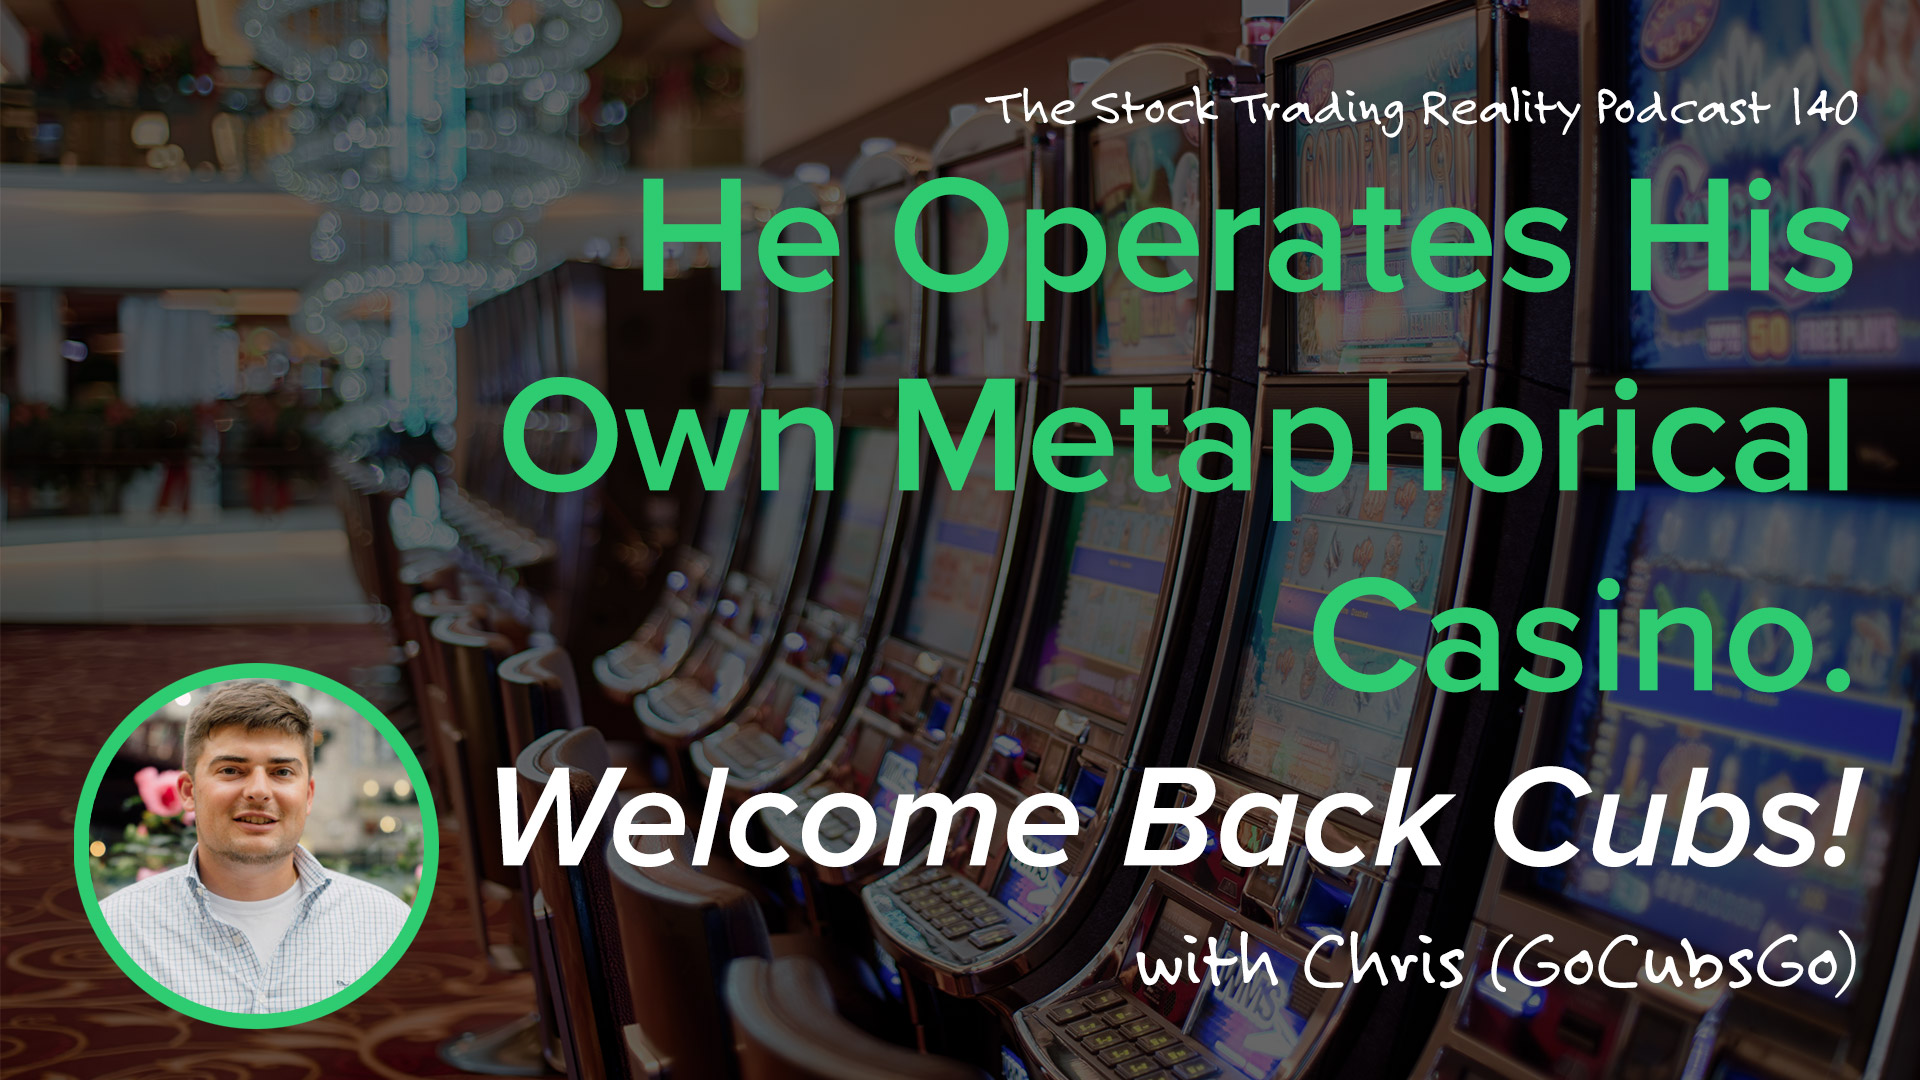 STR 140: He Operates His Own Metaphorical Casino. Welcome Back Cubs!